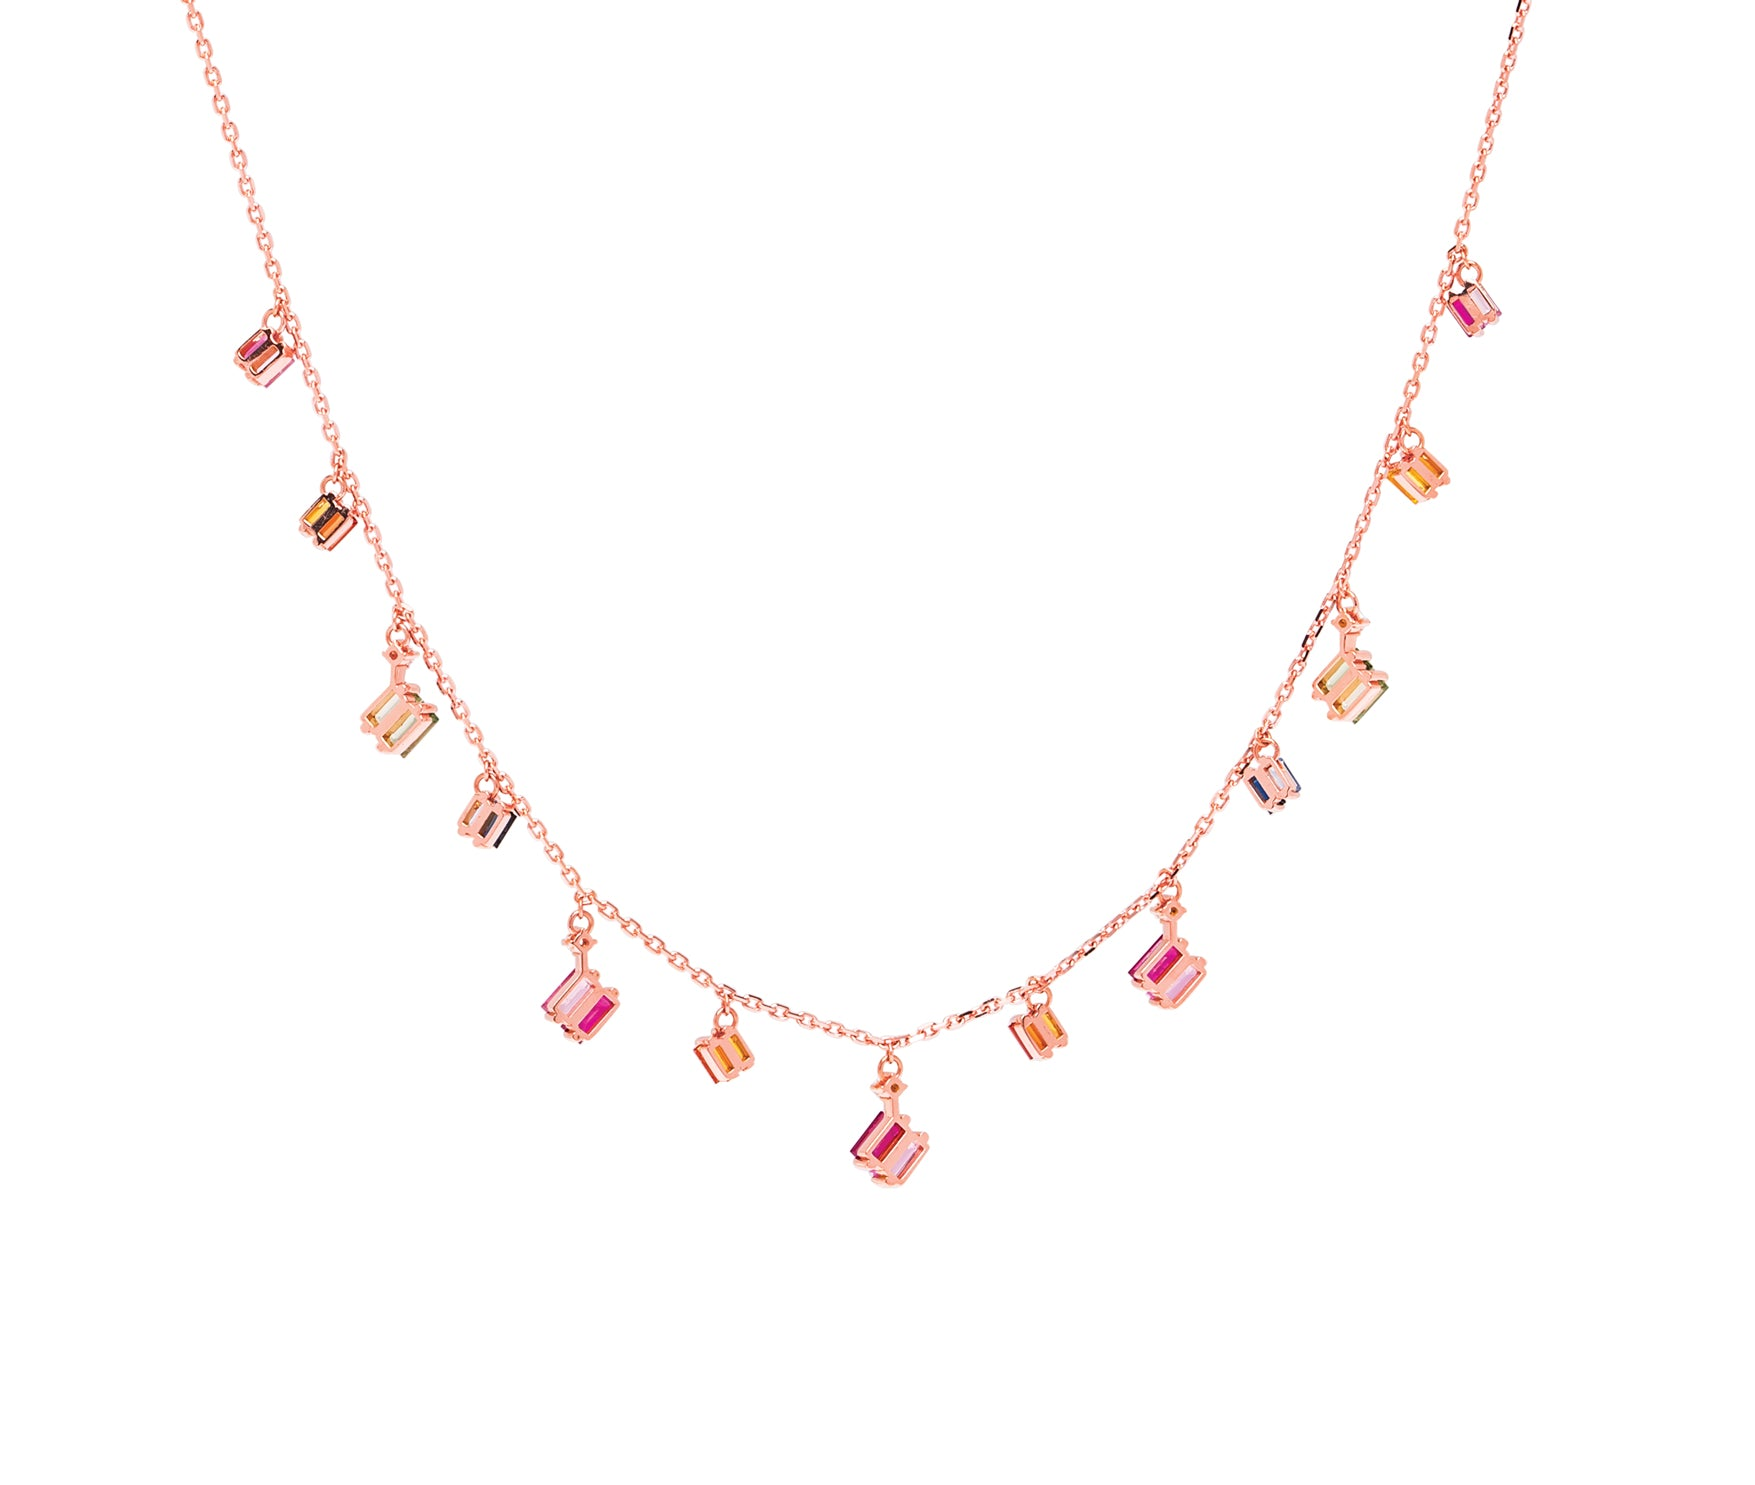 18K ROSE GOLD RAINBOW FRENZY DROPS NECKLACE